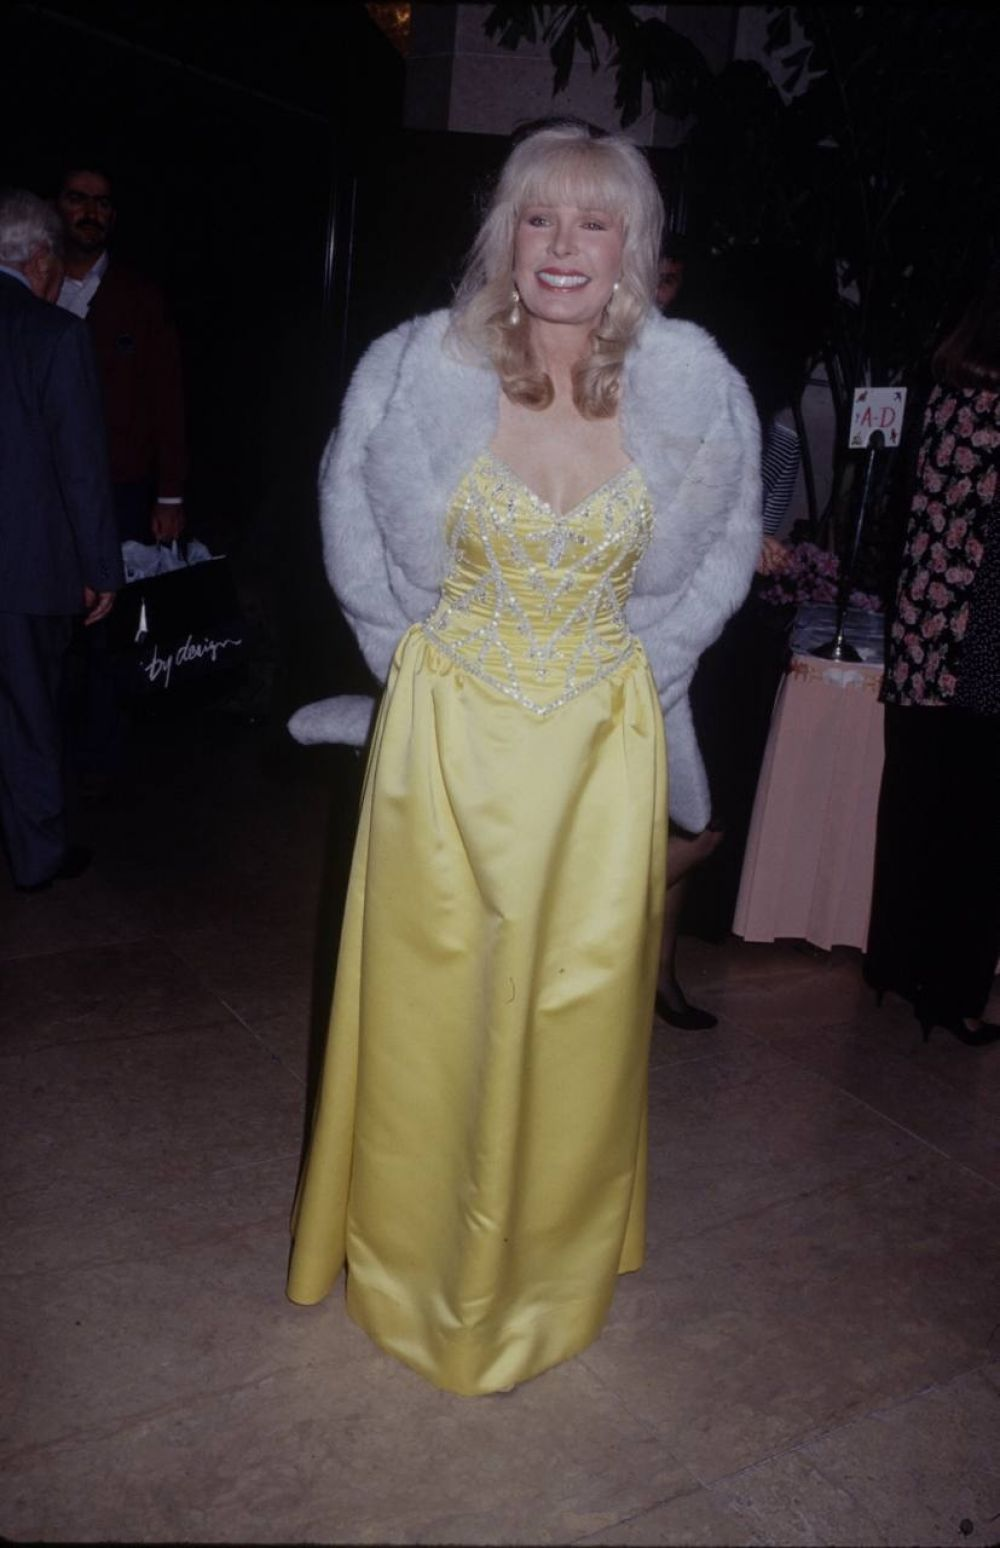 loretta swit nowloretta swit twitter, loretta swit, loretta swit mash, loretta swit net worth, loretta swit now, loretta swit death, loretta swit plastic surgery, loretta swit imdb, loretta swit feet, loretta swit images, loretta swit hot, loretta swit measurements, loretta swit gunsmoke, loretta swit nipples